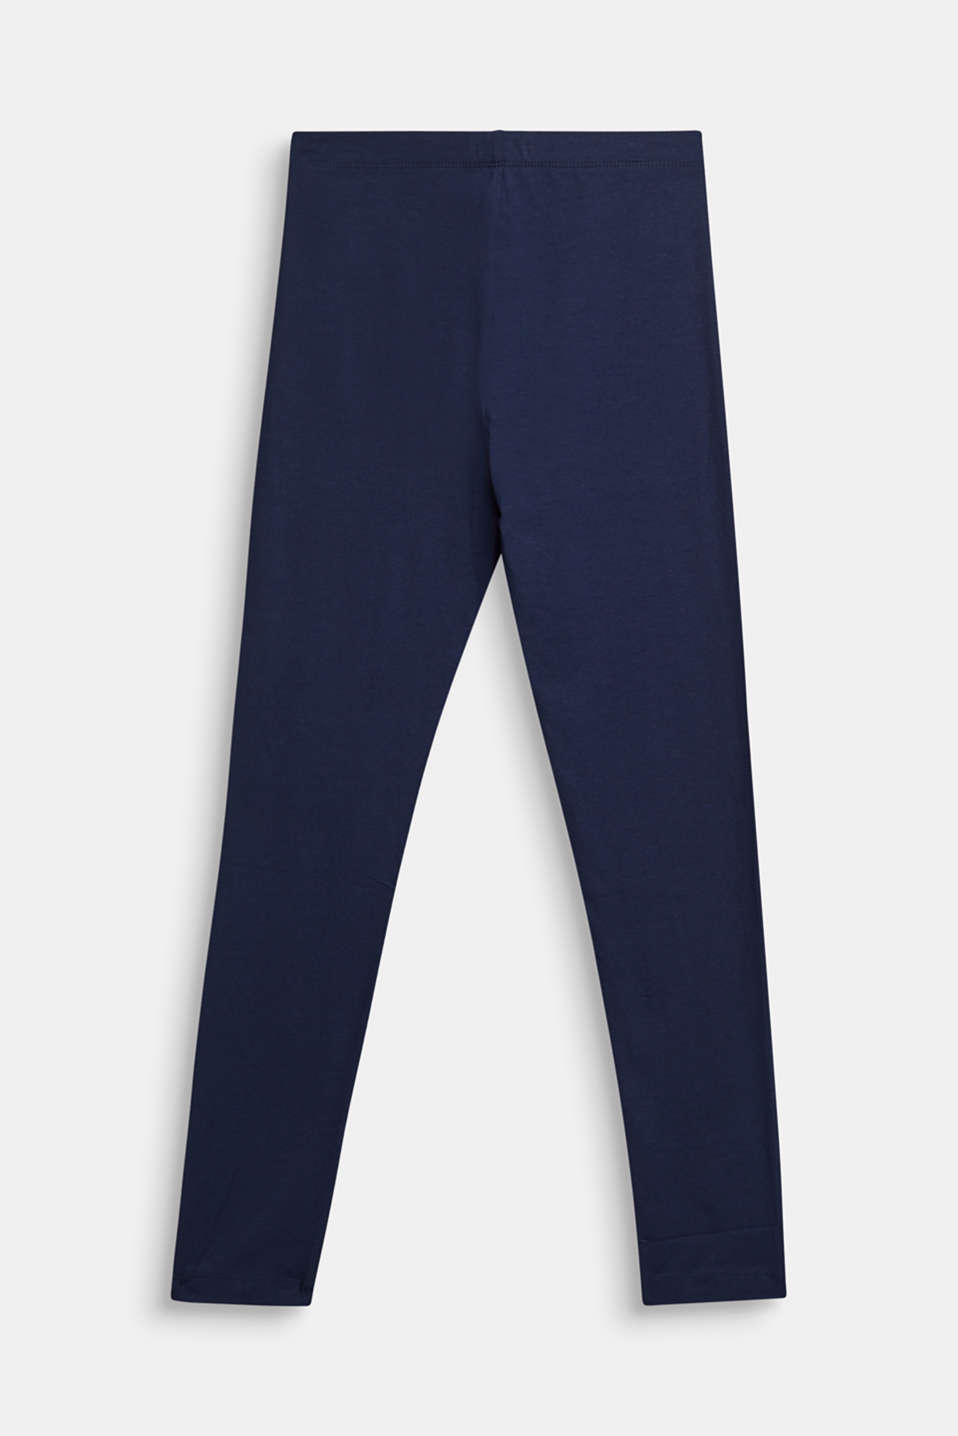 Pants knitted, LCNAVY, detail image number 1